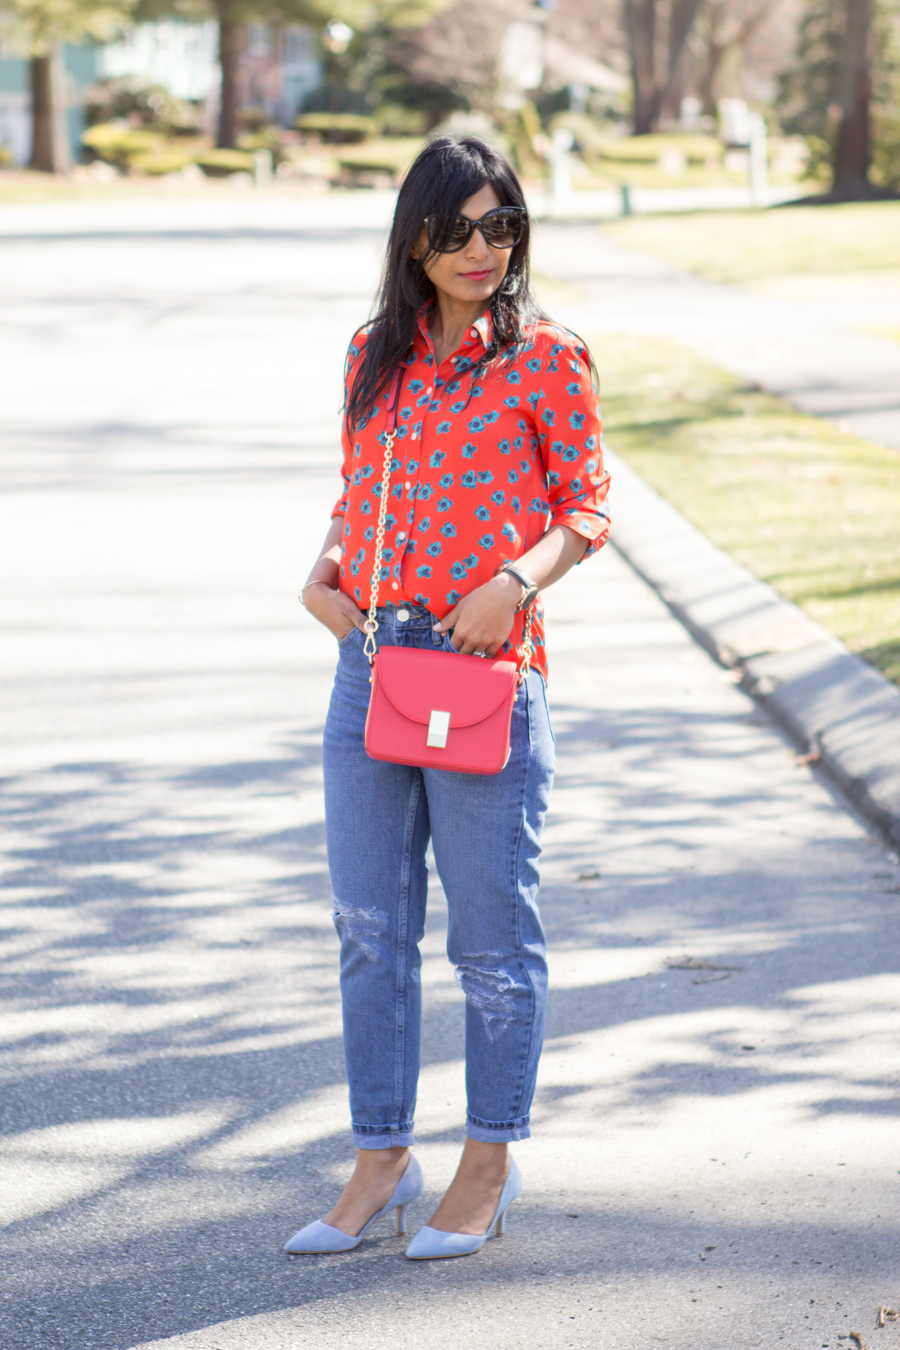 spring colors, spring outfit, bright colors, saturated colors, spring style, colorblocking, lipstick red, tomato red, periwinkle blue, pastel blue, crossbody bag, mom style